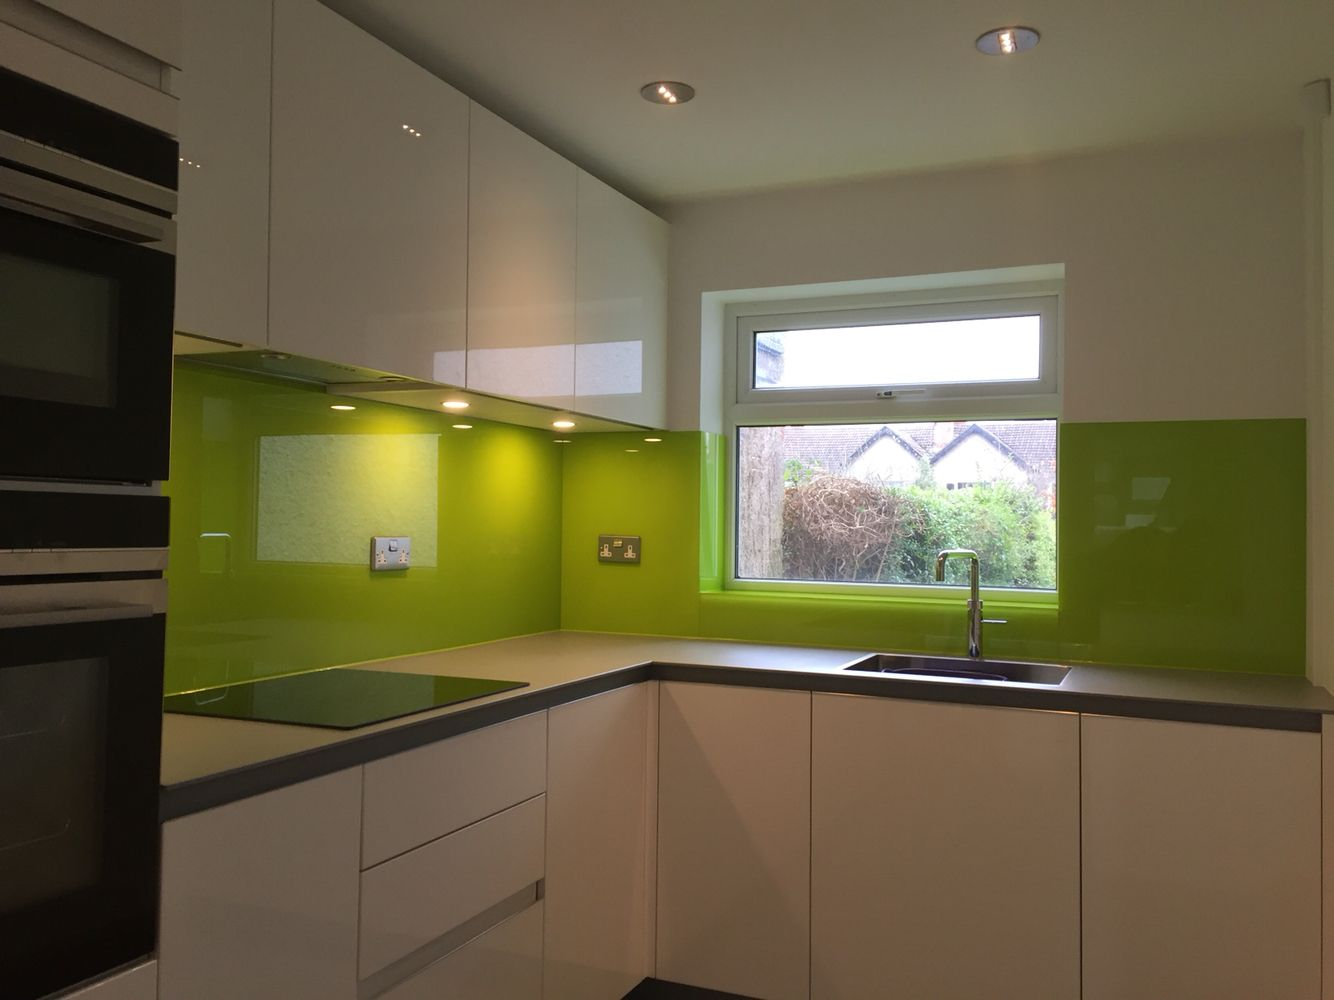 Best Lime Green Splashbacks Kitchen Refurbishment Lime Green 400 x 300